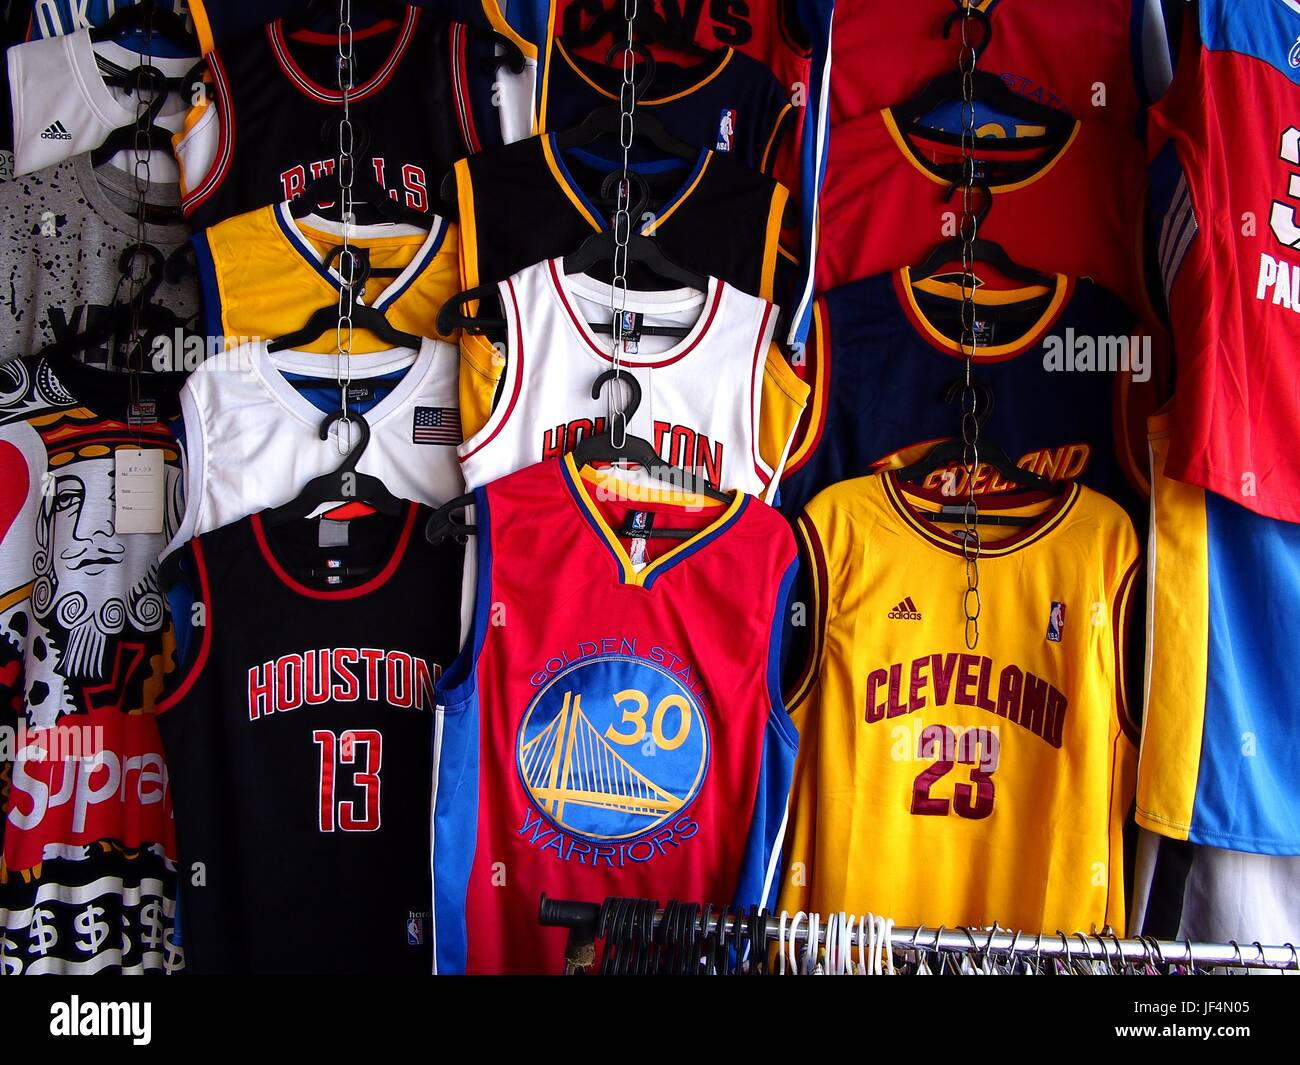 Sports Jerseys High Resolution Stock Photography and Images - Alamy